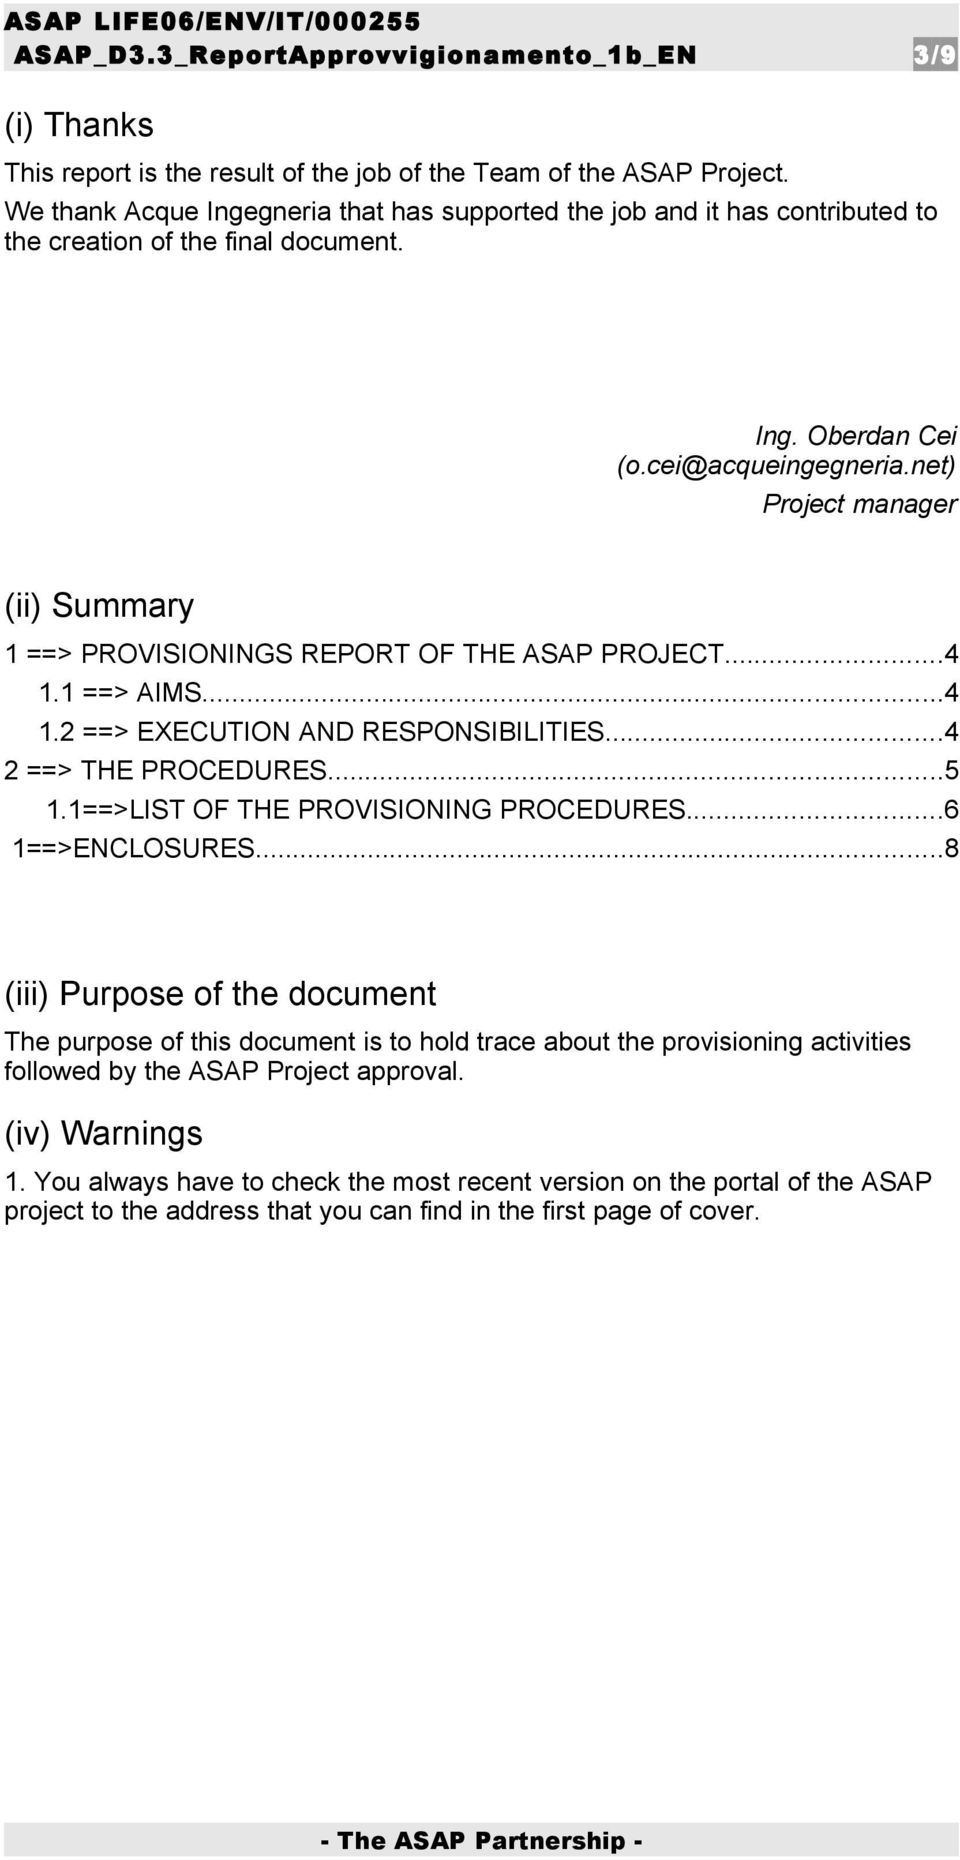 net) Project manager (ii) Summary 1 ==> PROVISIONINGS REPORT OF THE ASAP PROJECT...4 1.1 ==> AIMS...4 1.2 ==> EXECUTION AND RESPONSIBILITIES...4 2 ==> THE PROCEDURES...5 1.